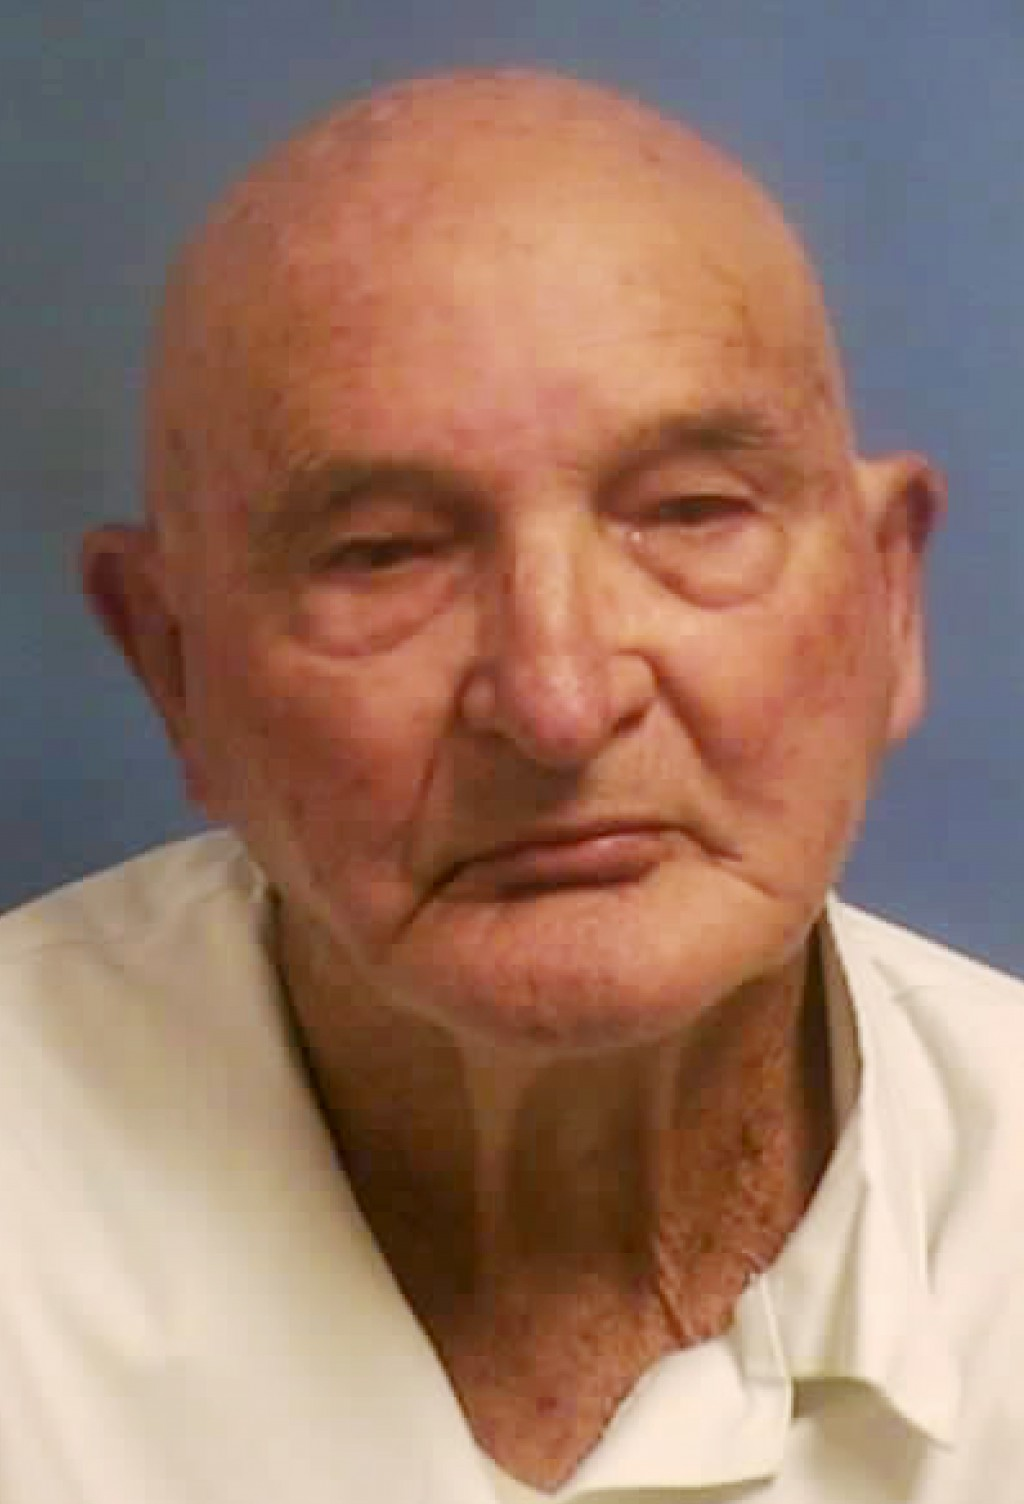 This undated photo provided by the Mississippi Department of Corrections shows Edgar Ray Killen, a former Ku Klux Klan leader who was convicted in the